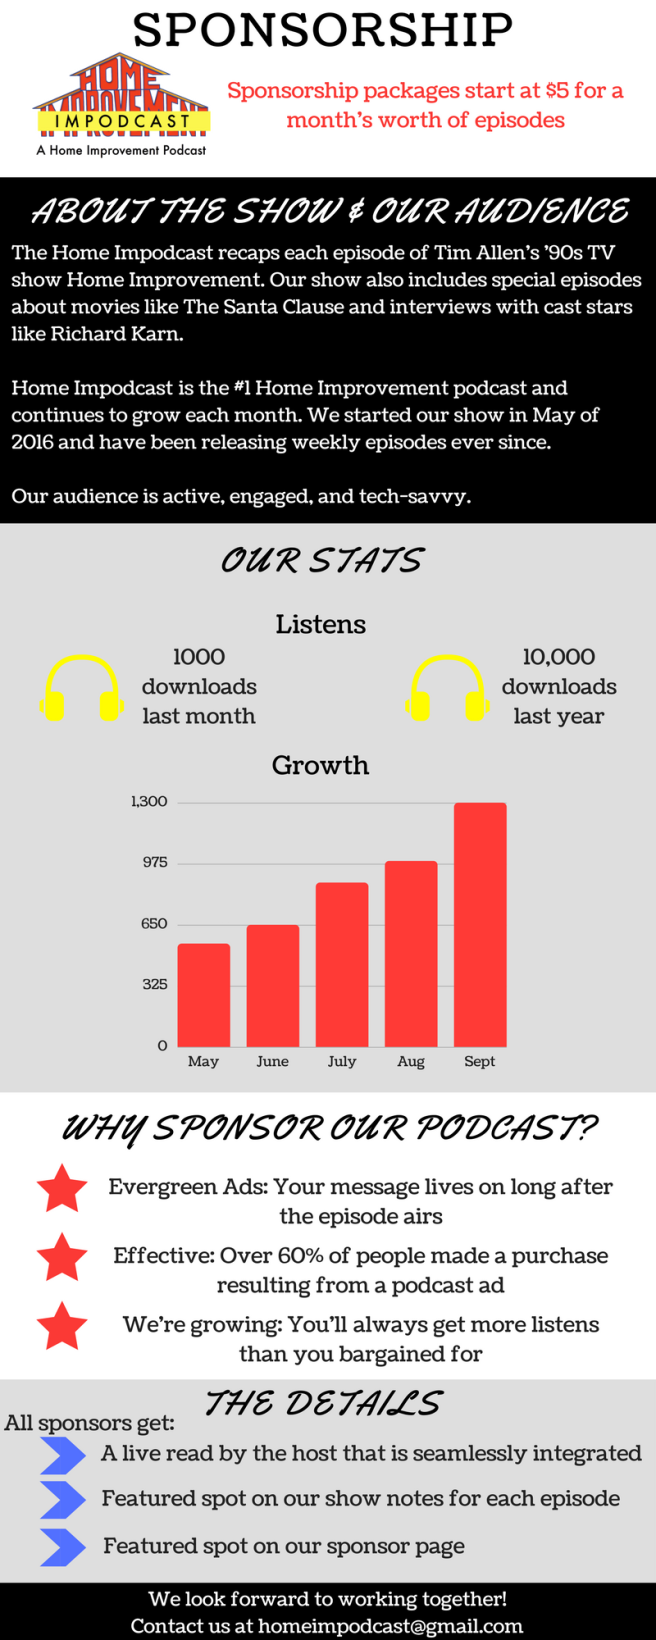 Home Impodcast Sponsorship Infographic (1)